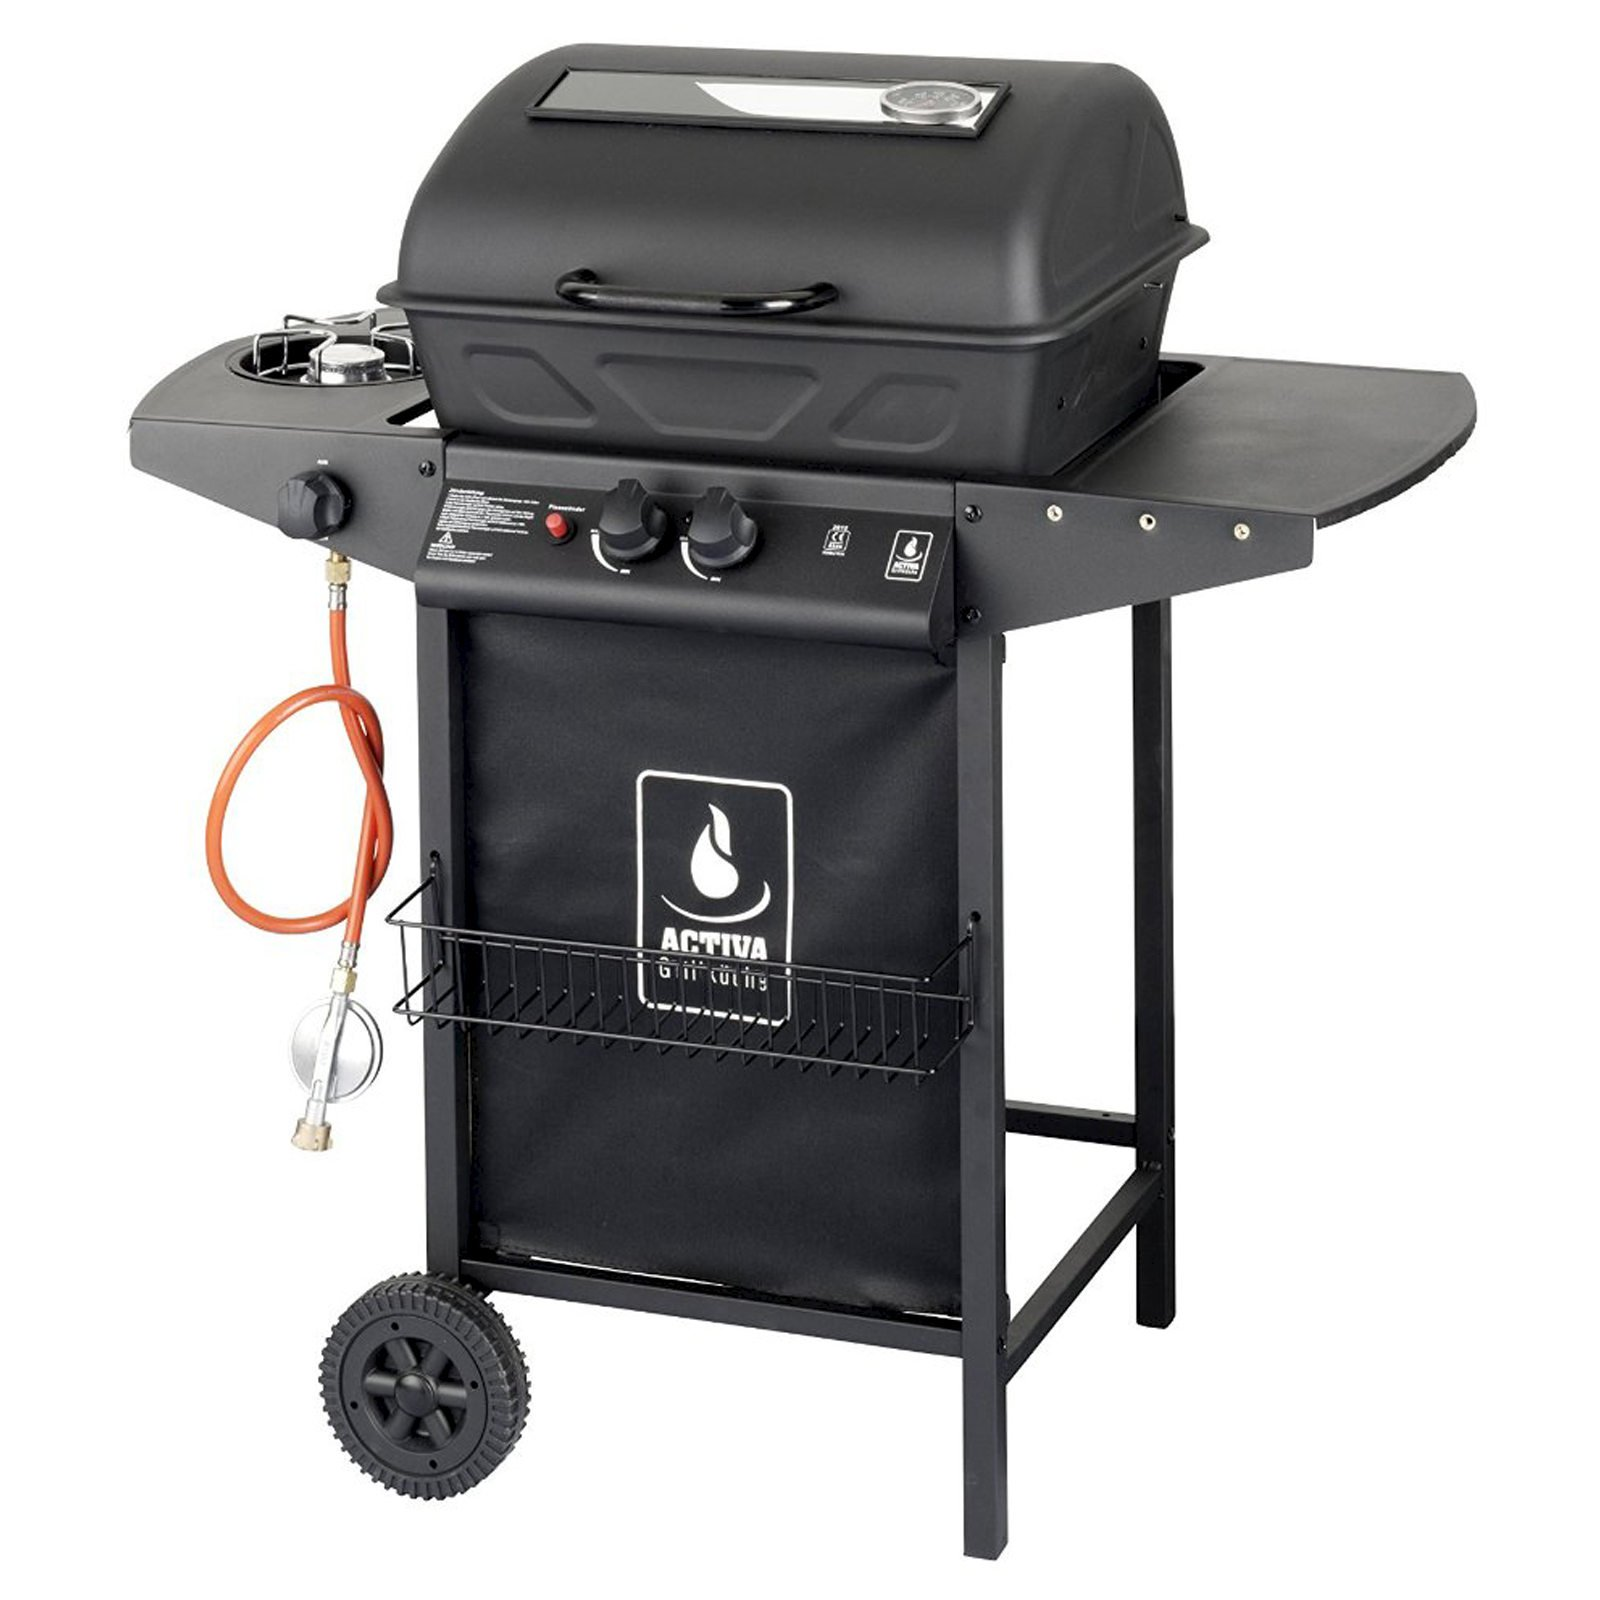 Activa Lava Stone Gas Grill 5.5 KW + Side Burner 2.5 KW by Activa